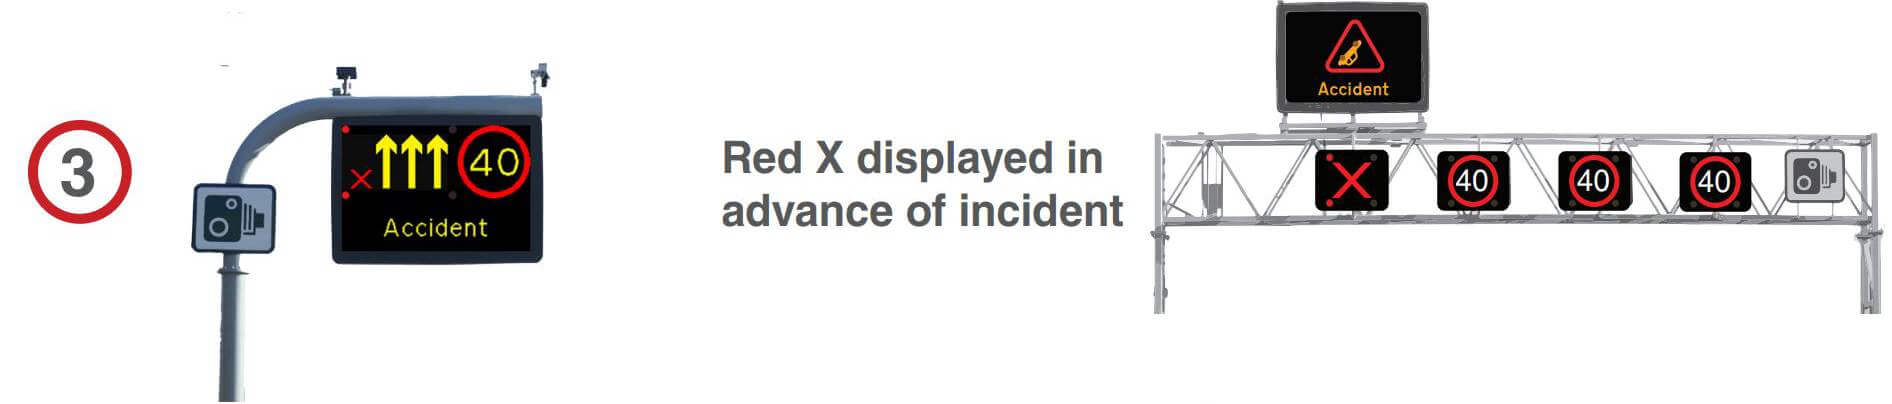 The Red X symbol displayed in advance of incident